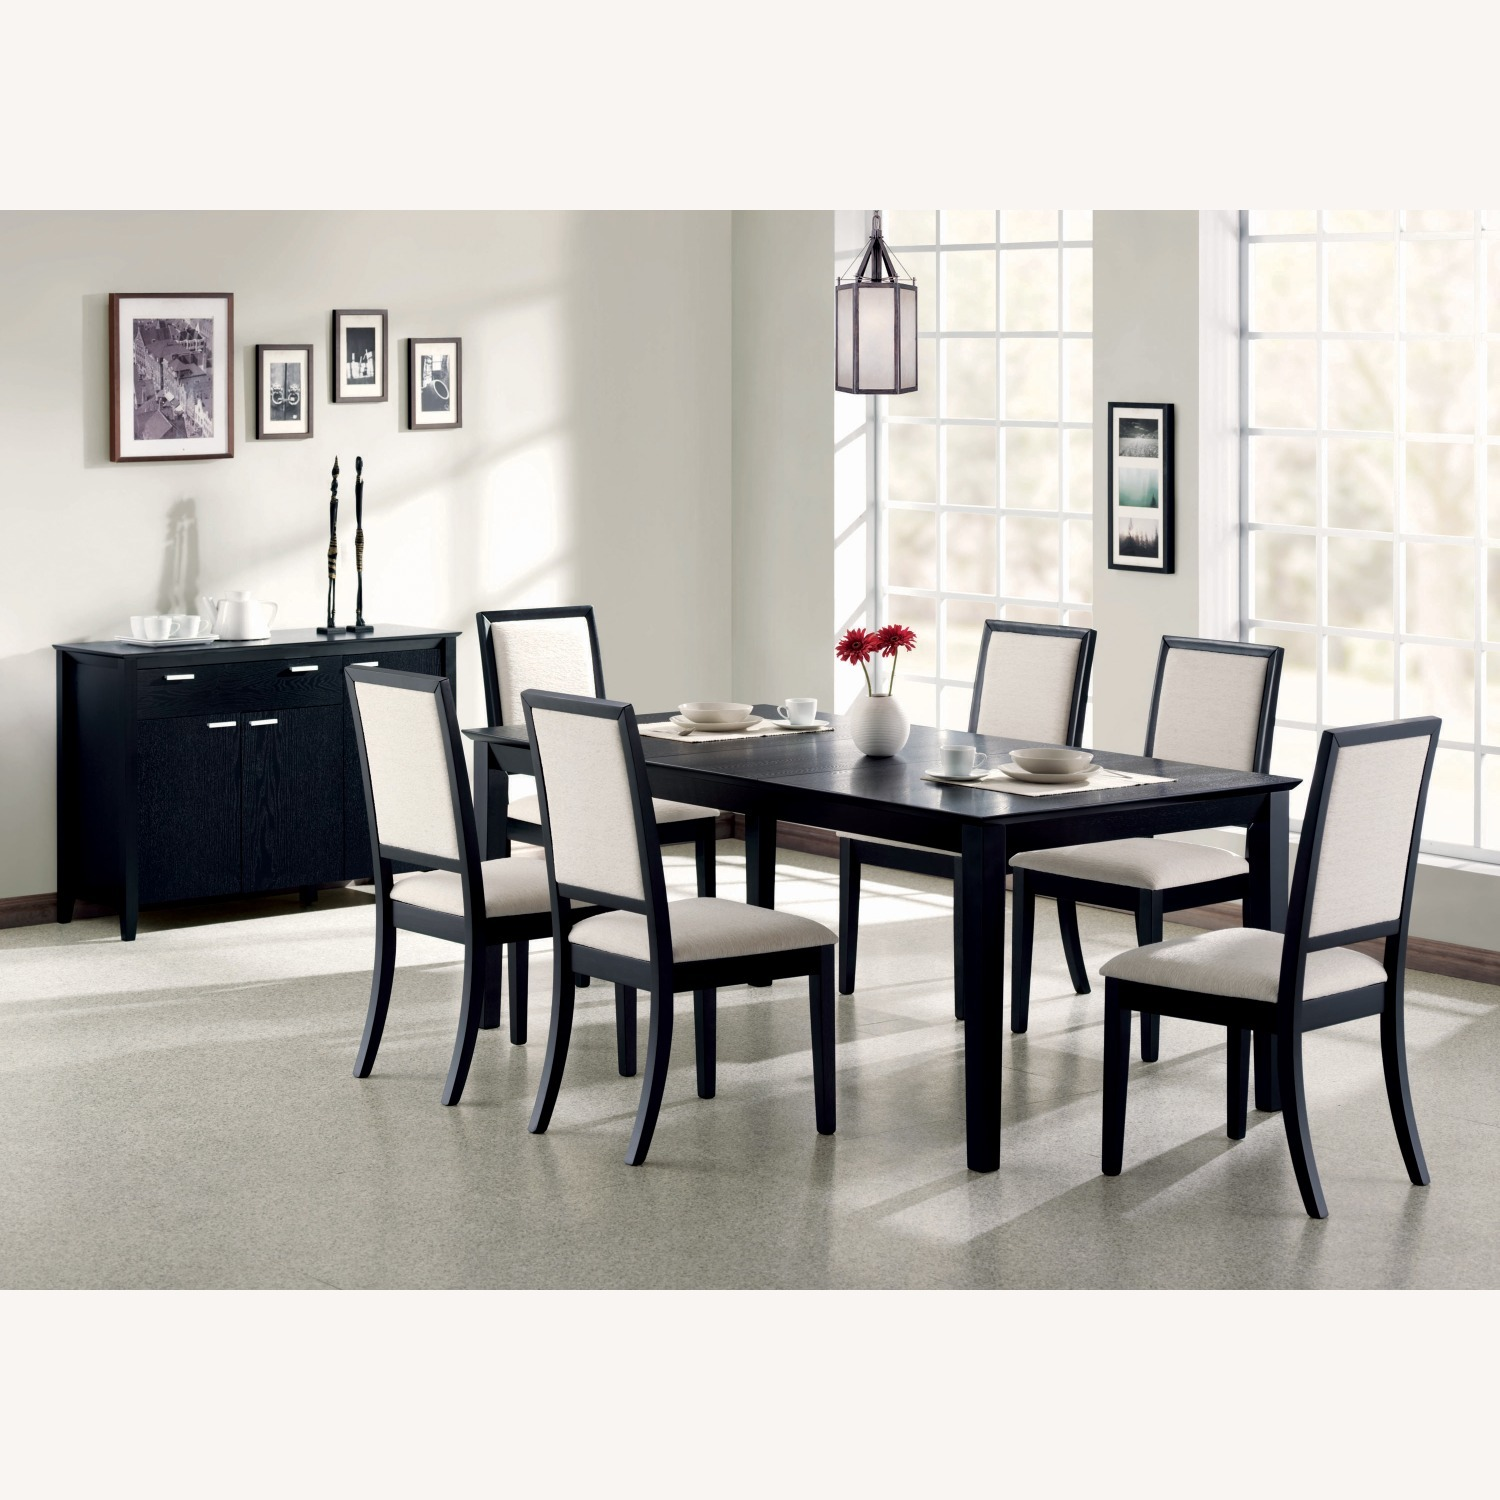 Coaster Fine Black Wood Dining Table with Expandable Leaf - image-5